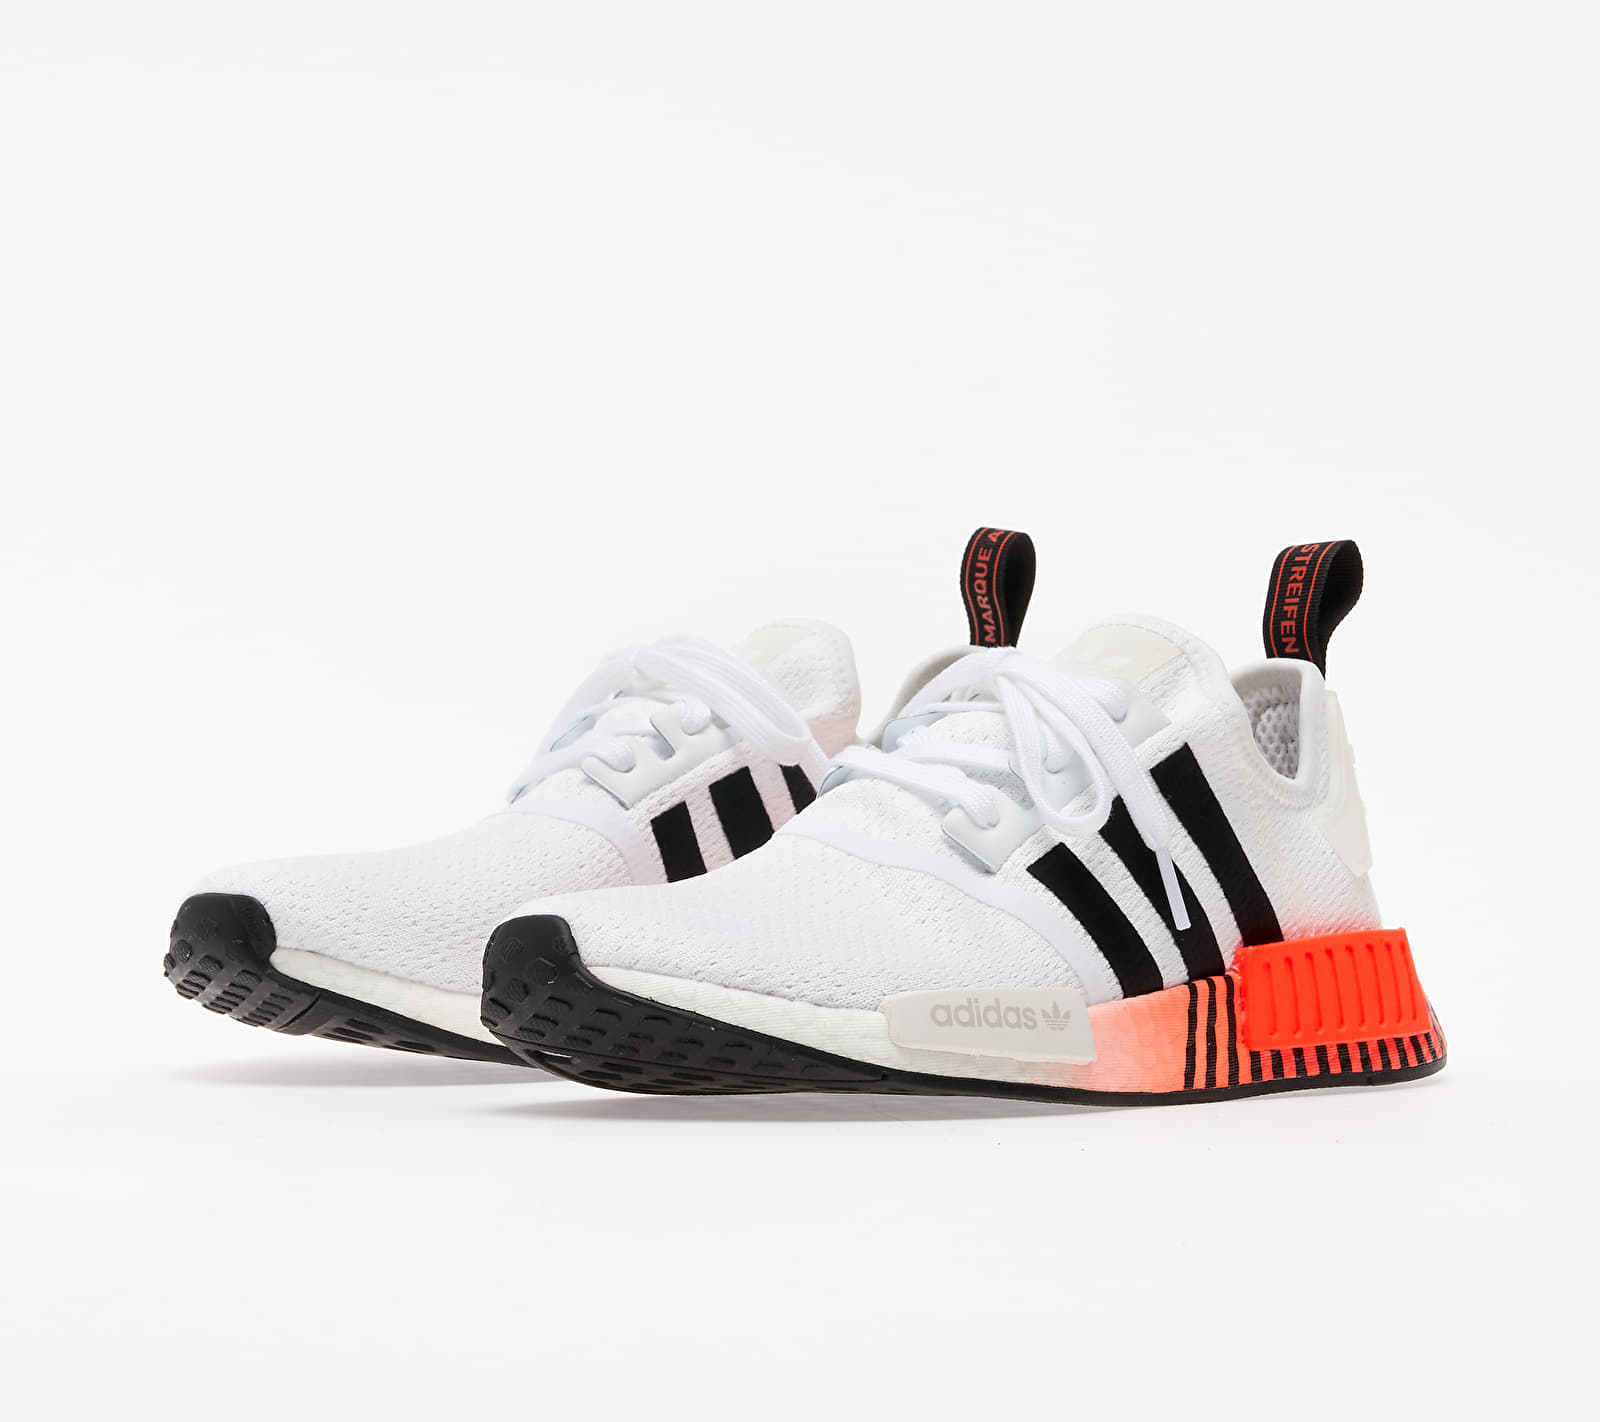 adidas NMD_R1 Ftw White/ Core Black/ Solid Red EUR 46